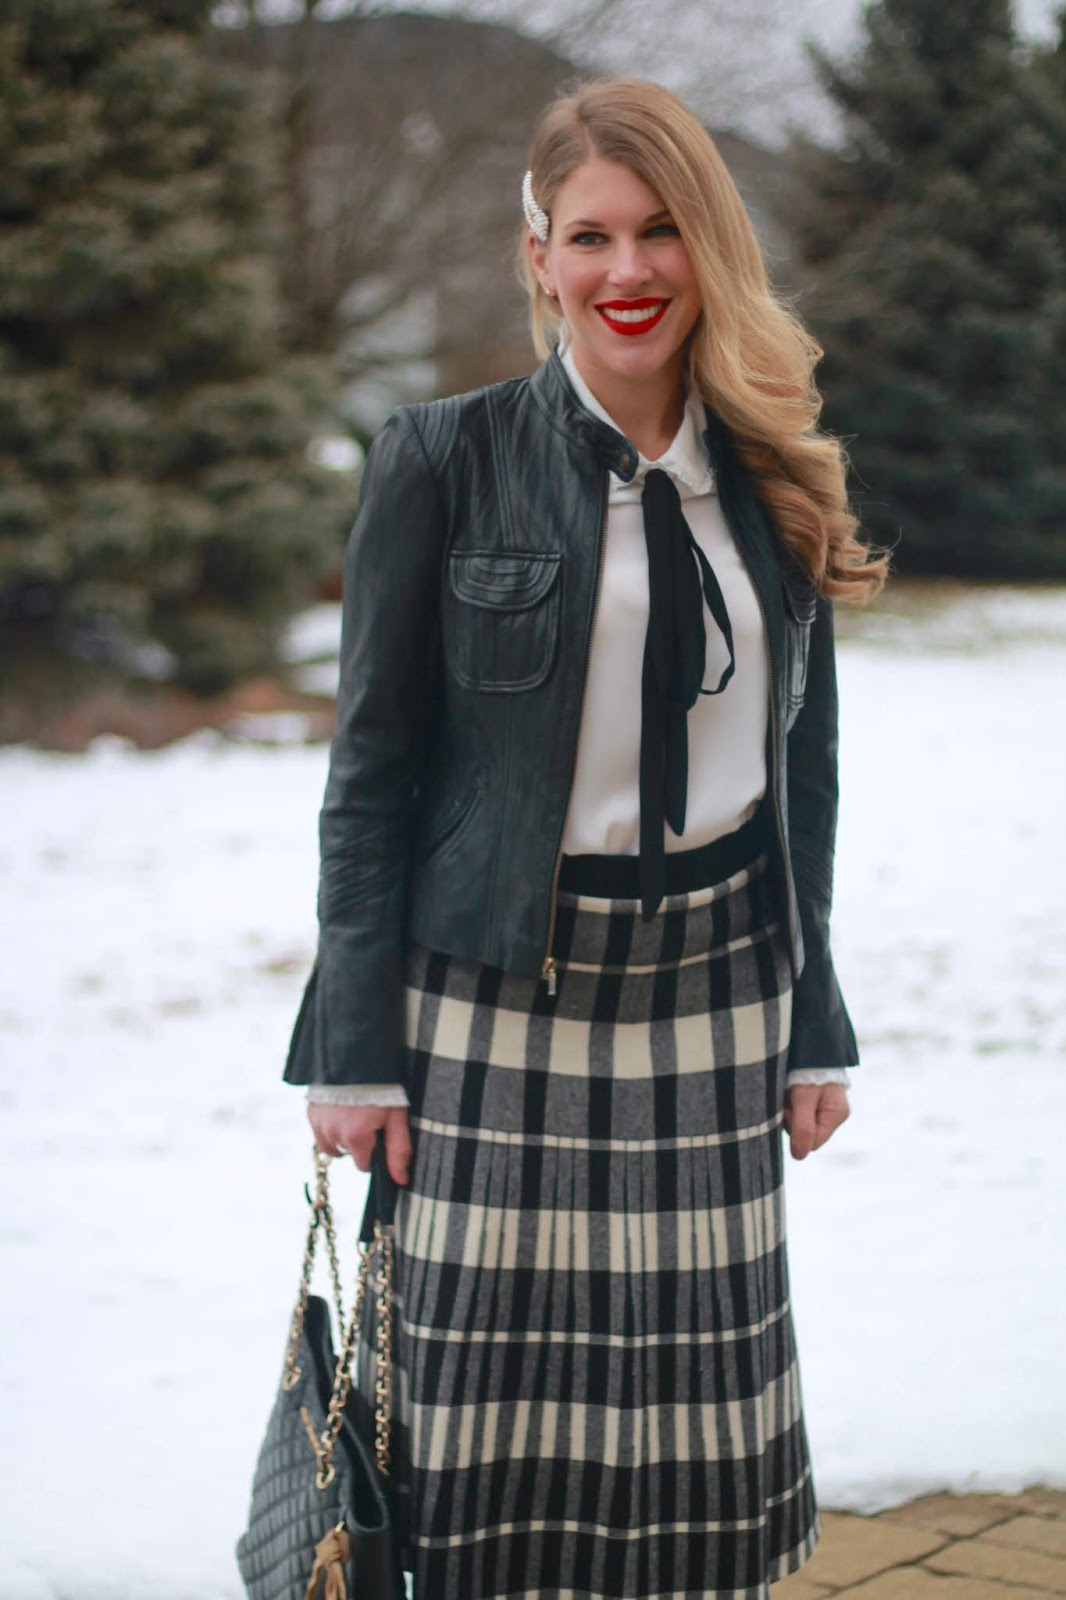 winter work outfit, midi skirt in winter, midi skirt for work, plaid midi skirt, black moto jacket, white bow tie blouse, burgundy boots